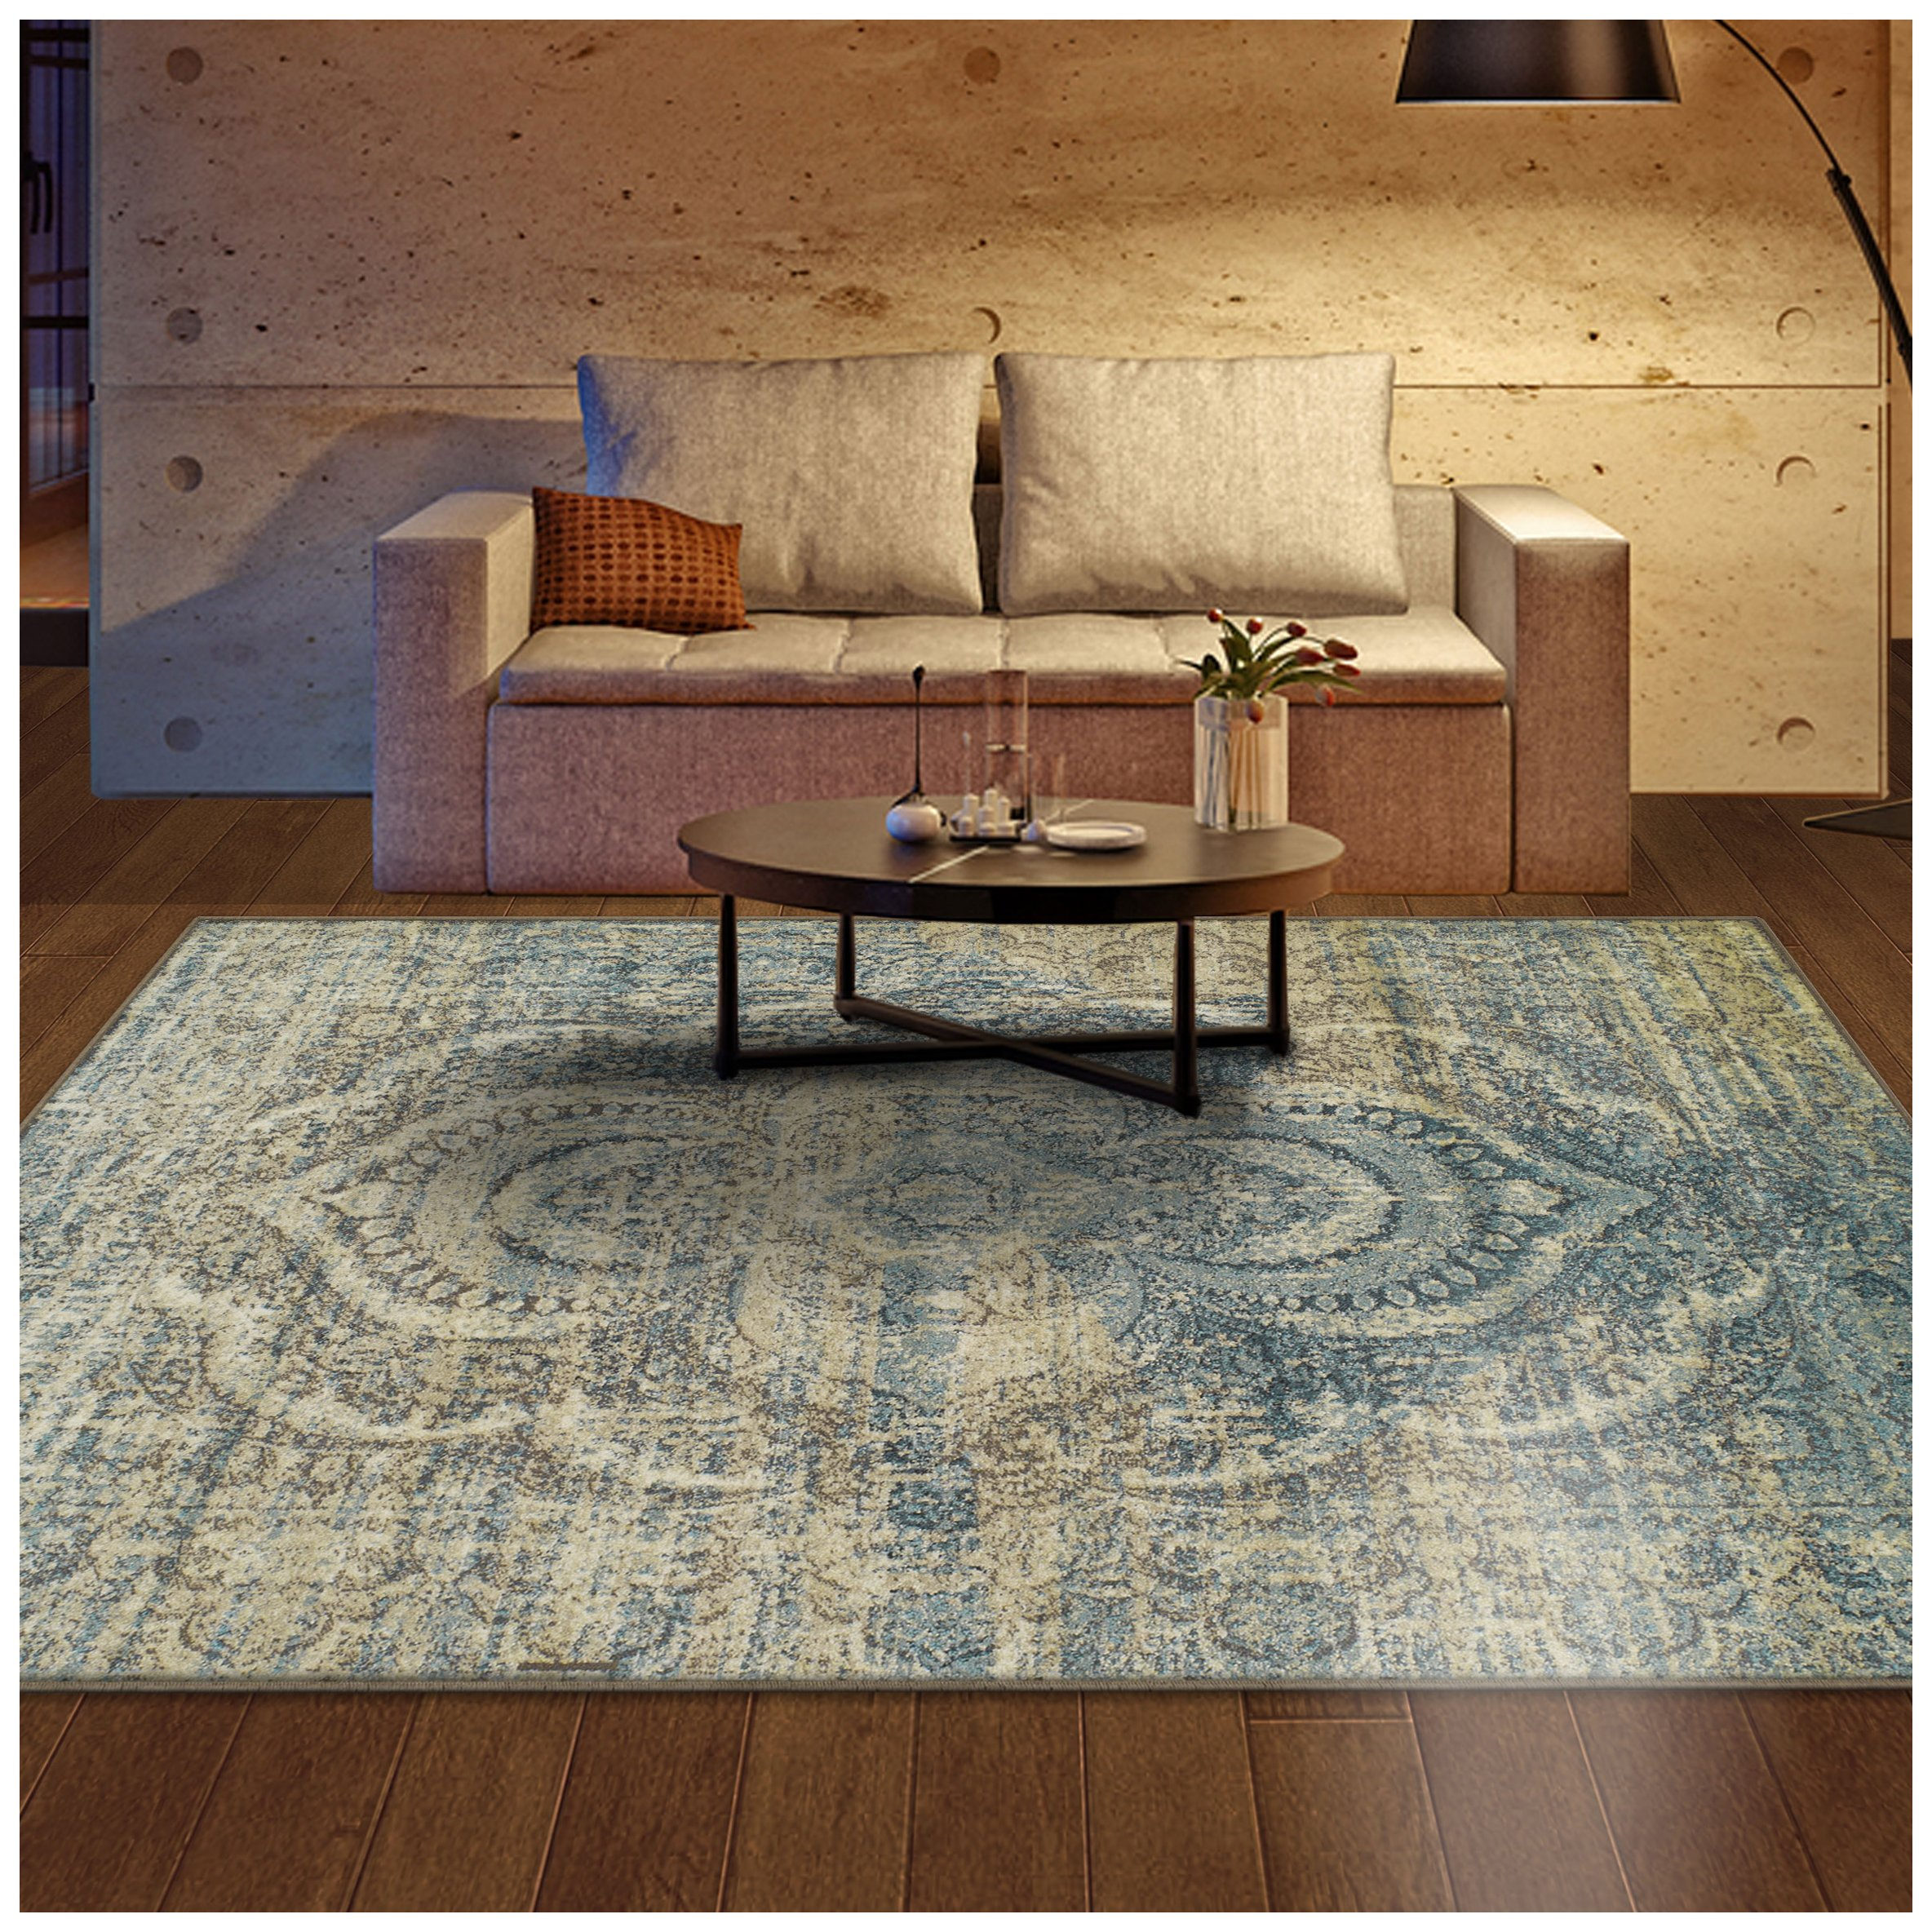 Superior Salford Collection Area Rug, 10mm Pile Height with Jute Backing, Fashionable and Affordable Rugs, Distressed Vintage Persian Rug Design - 8' x 10' Rug, Blue and Beige by Superior